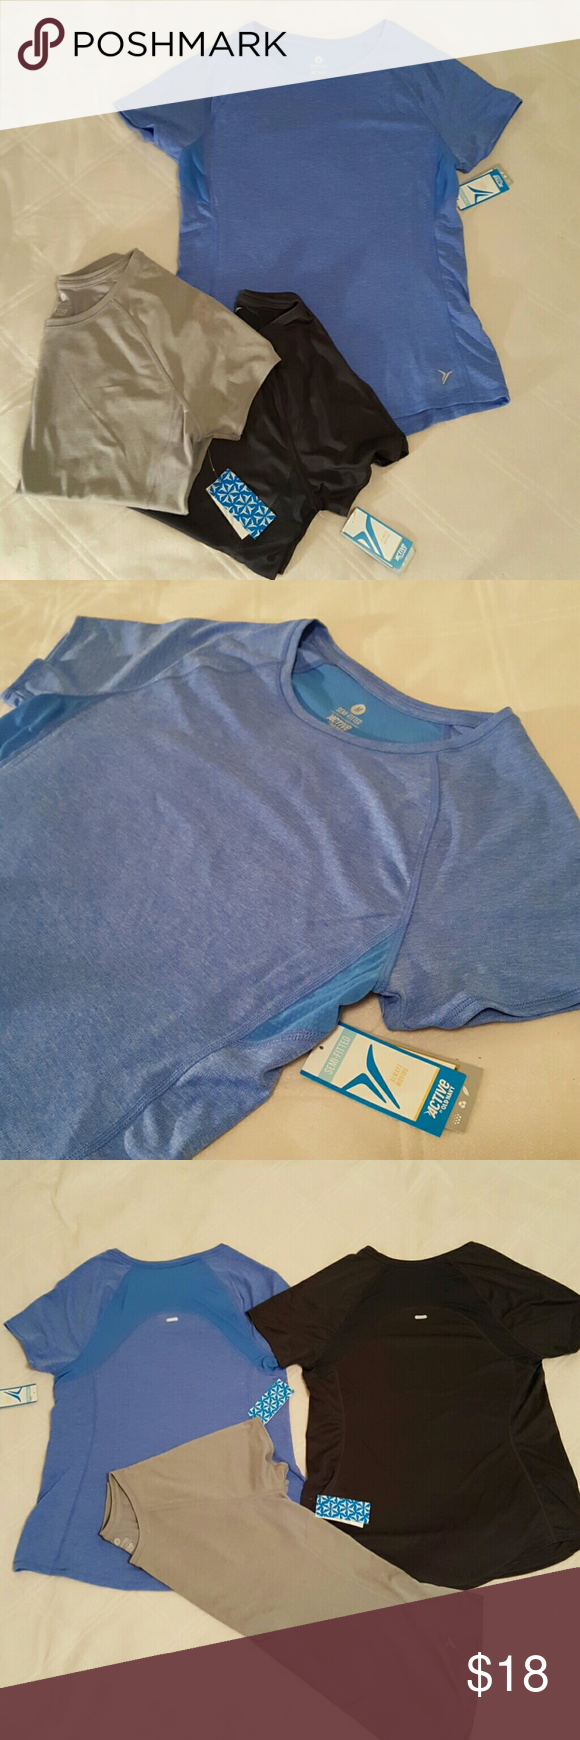 """NWOT Workout Shirts Lot of 3 Semi-Fitted Active workout shirts from Old Navy! NEVER WORN and still have original tags! GoDRY Moisture-Wicking, Soft, sporty feel of workout gear and Lightweight Very cute and comfy! All 3 shirts are the same cut and size but different colors Perfect for working out and neutral enough to wear with your current gear.  Great """"Athlesure"""" look as well- great for relaxing or running errands! All 3 shirts for the price of 1 :) Old Navy Tops"""